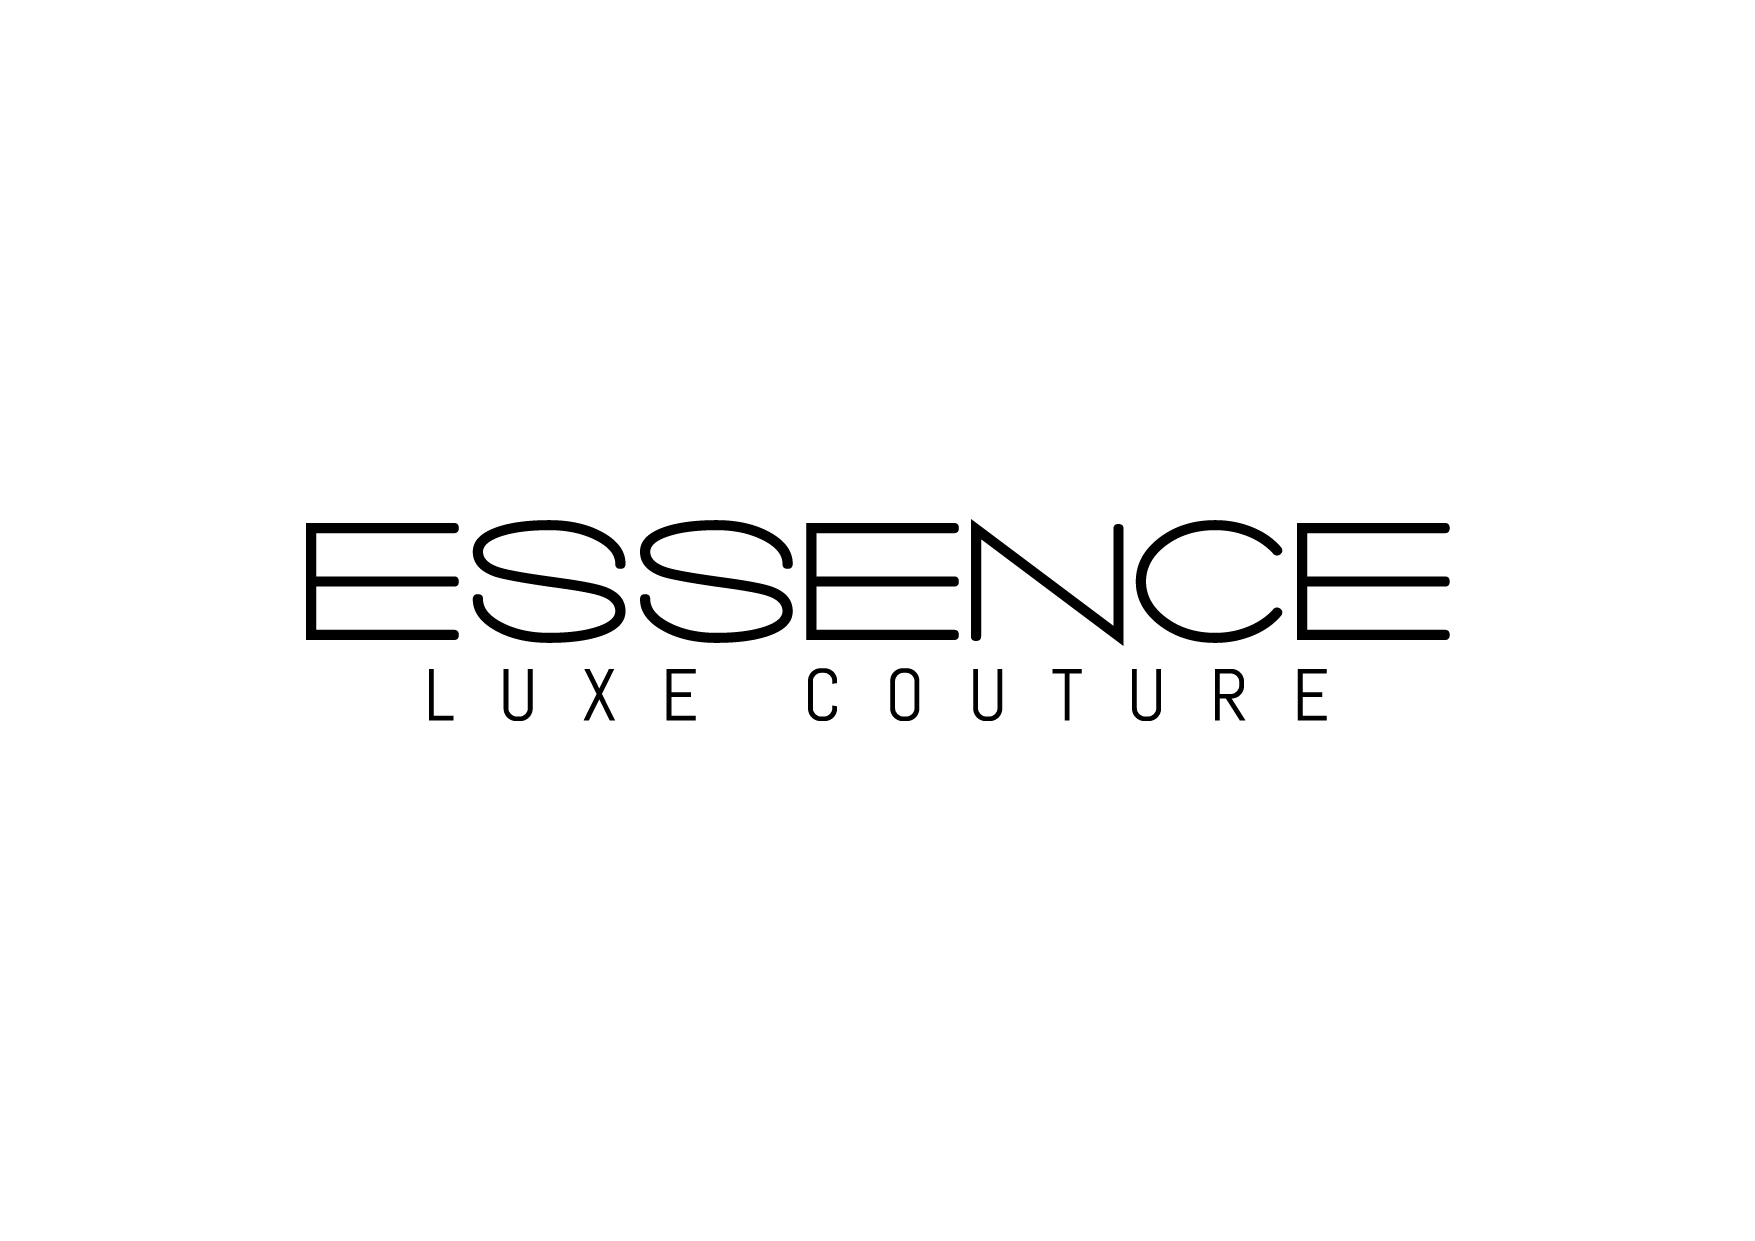 Essence luxe couture logo04 %281%29